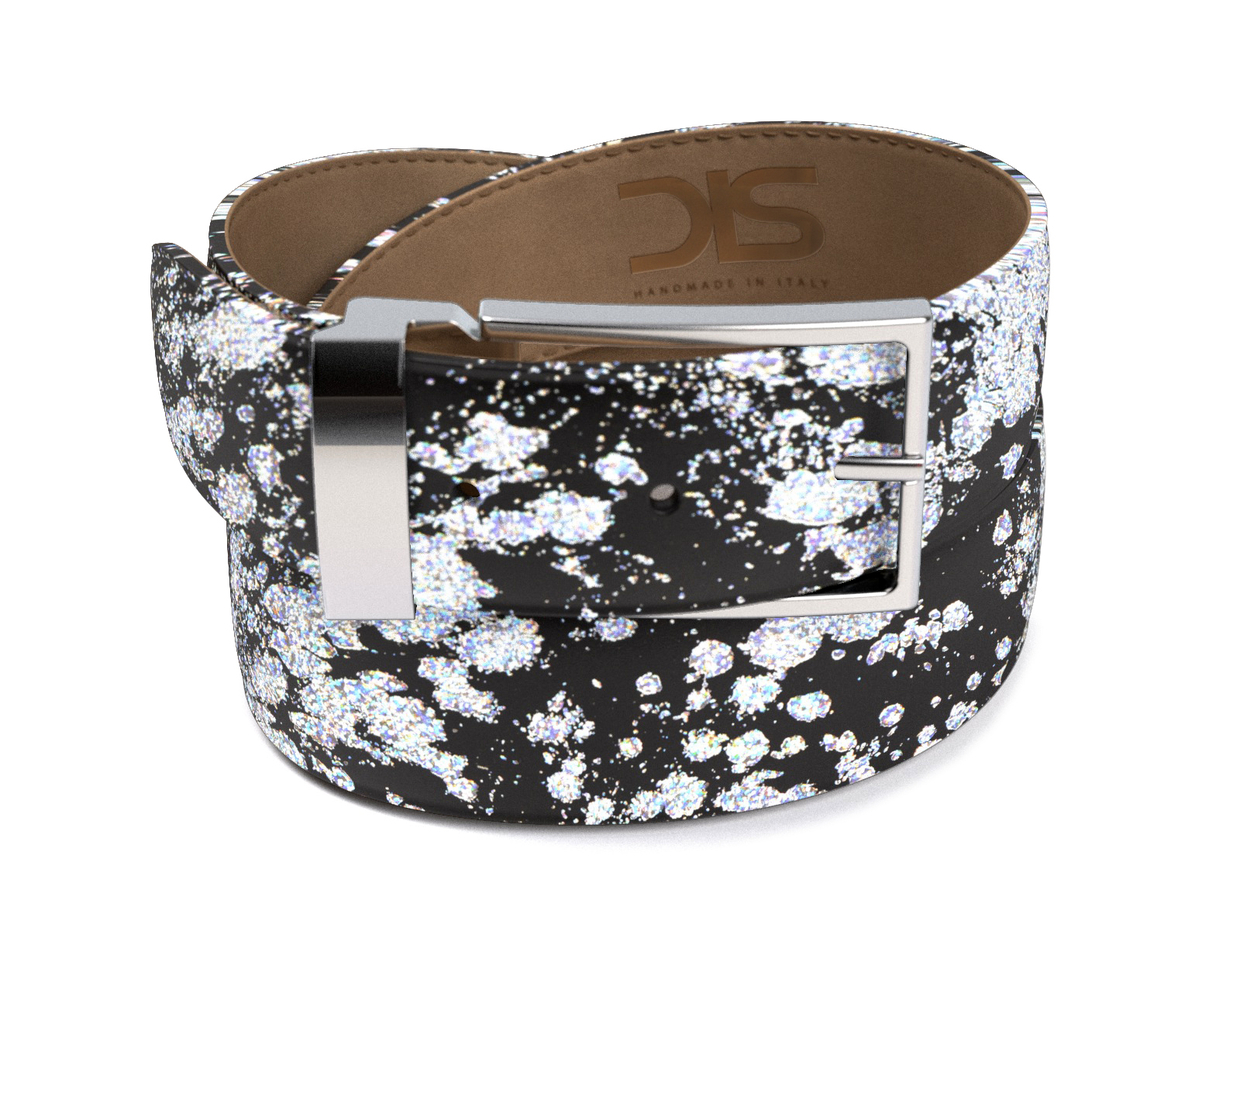 Pattern silver spray leather belt with silver buckle